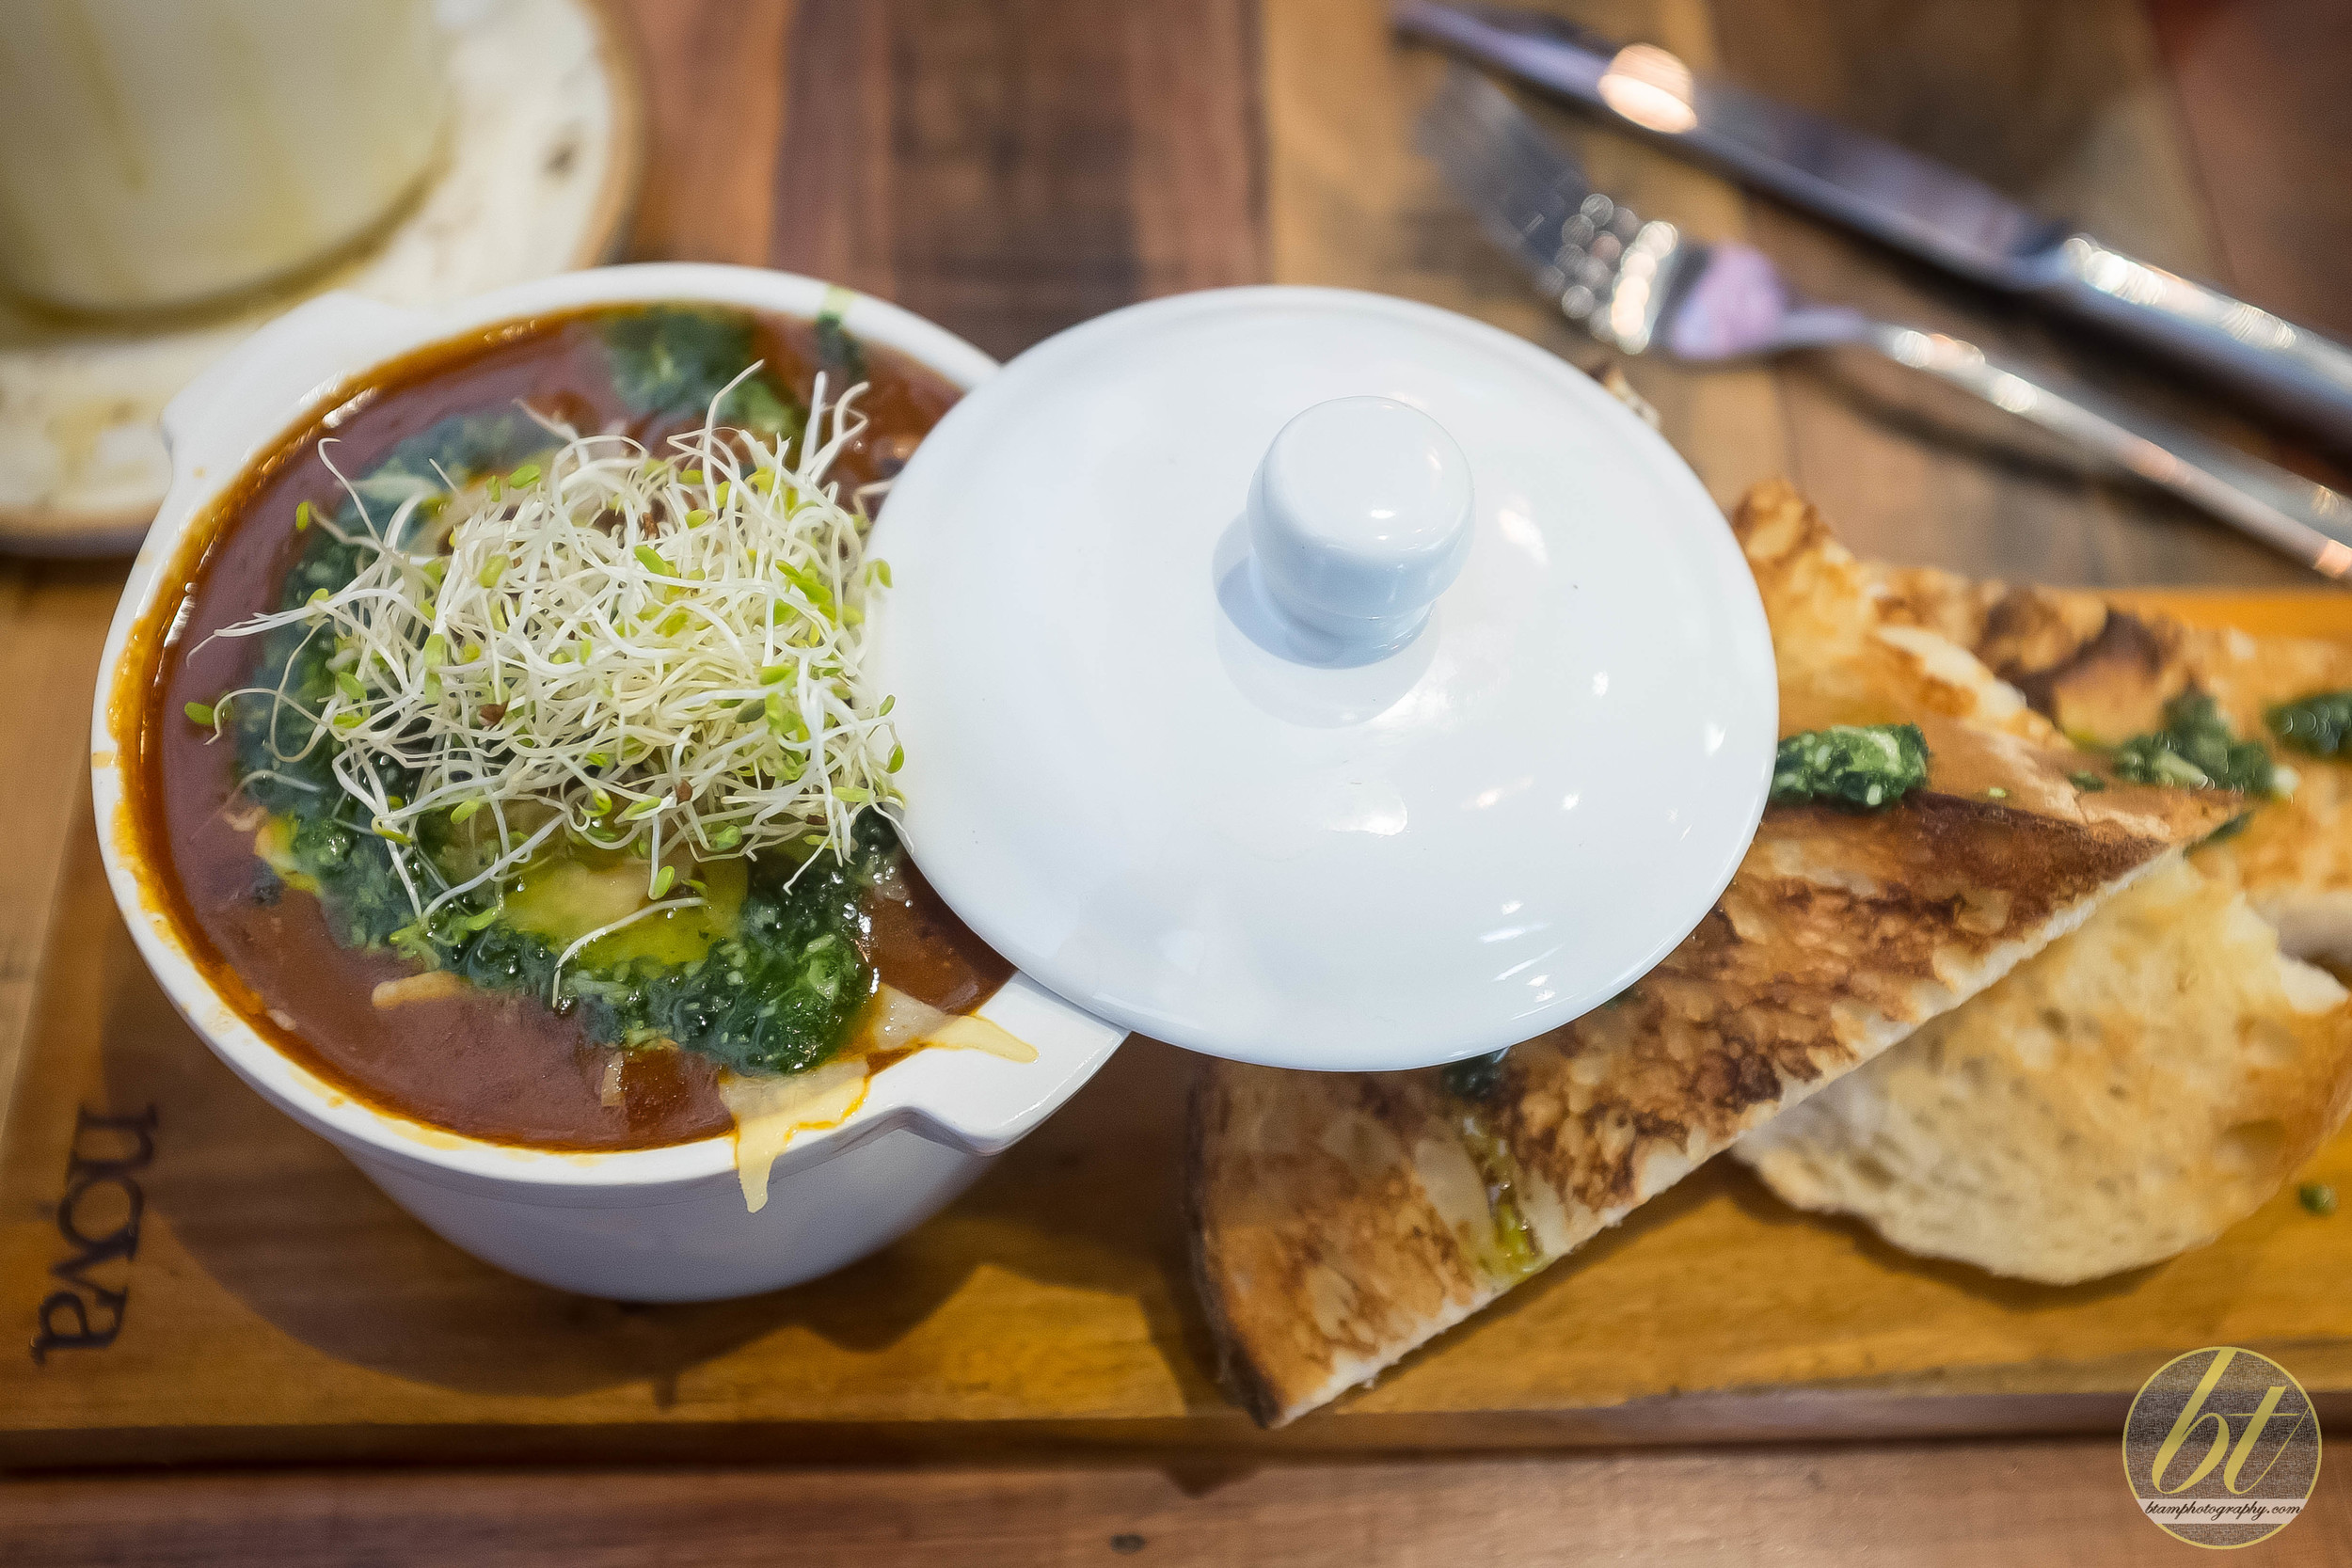 The Cheeky ($19) - Slow cooked beef cheeks, black eyed beans, poached egg, crusty bread, kale pesto